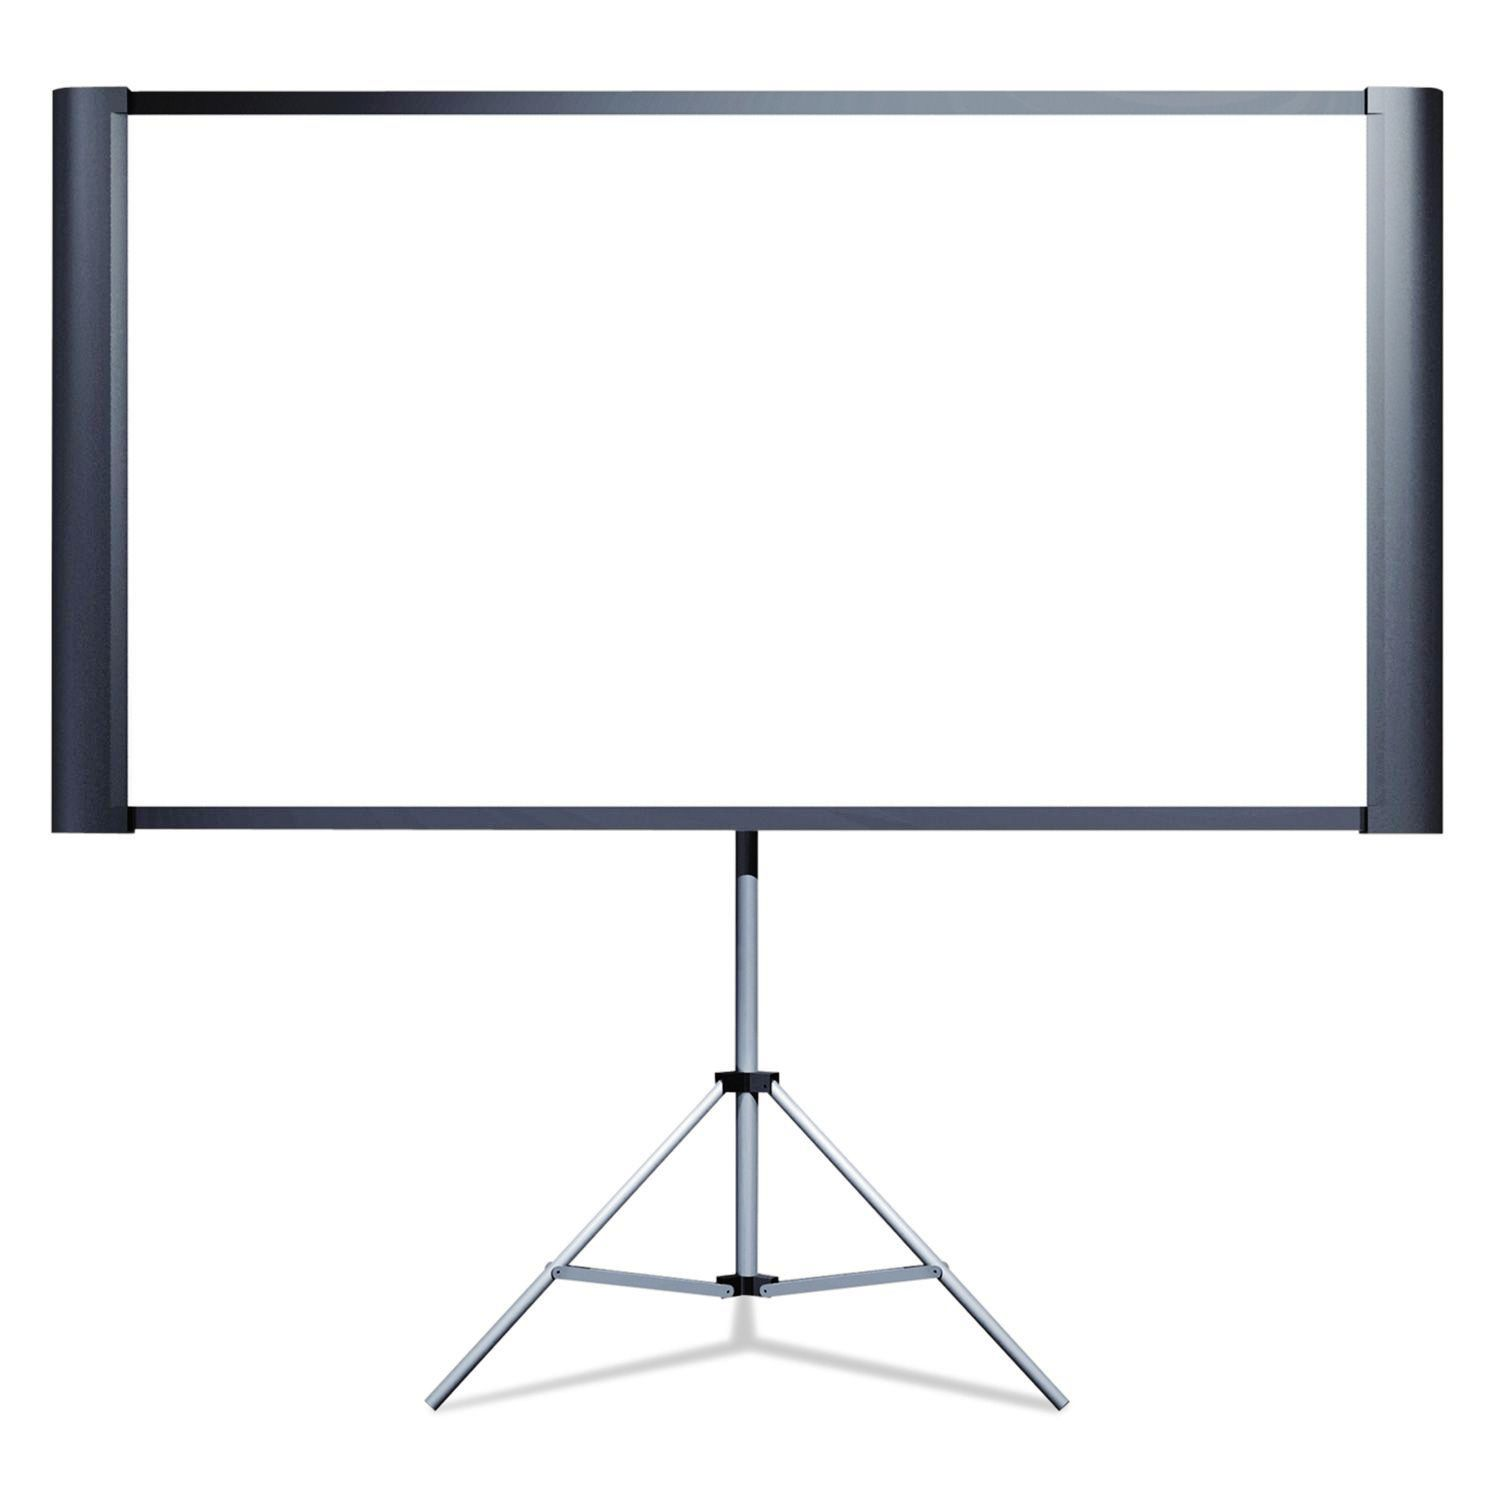 "Portable Projection Screen - 80"" Widescreen"